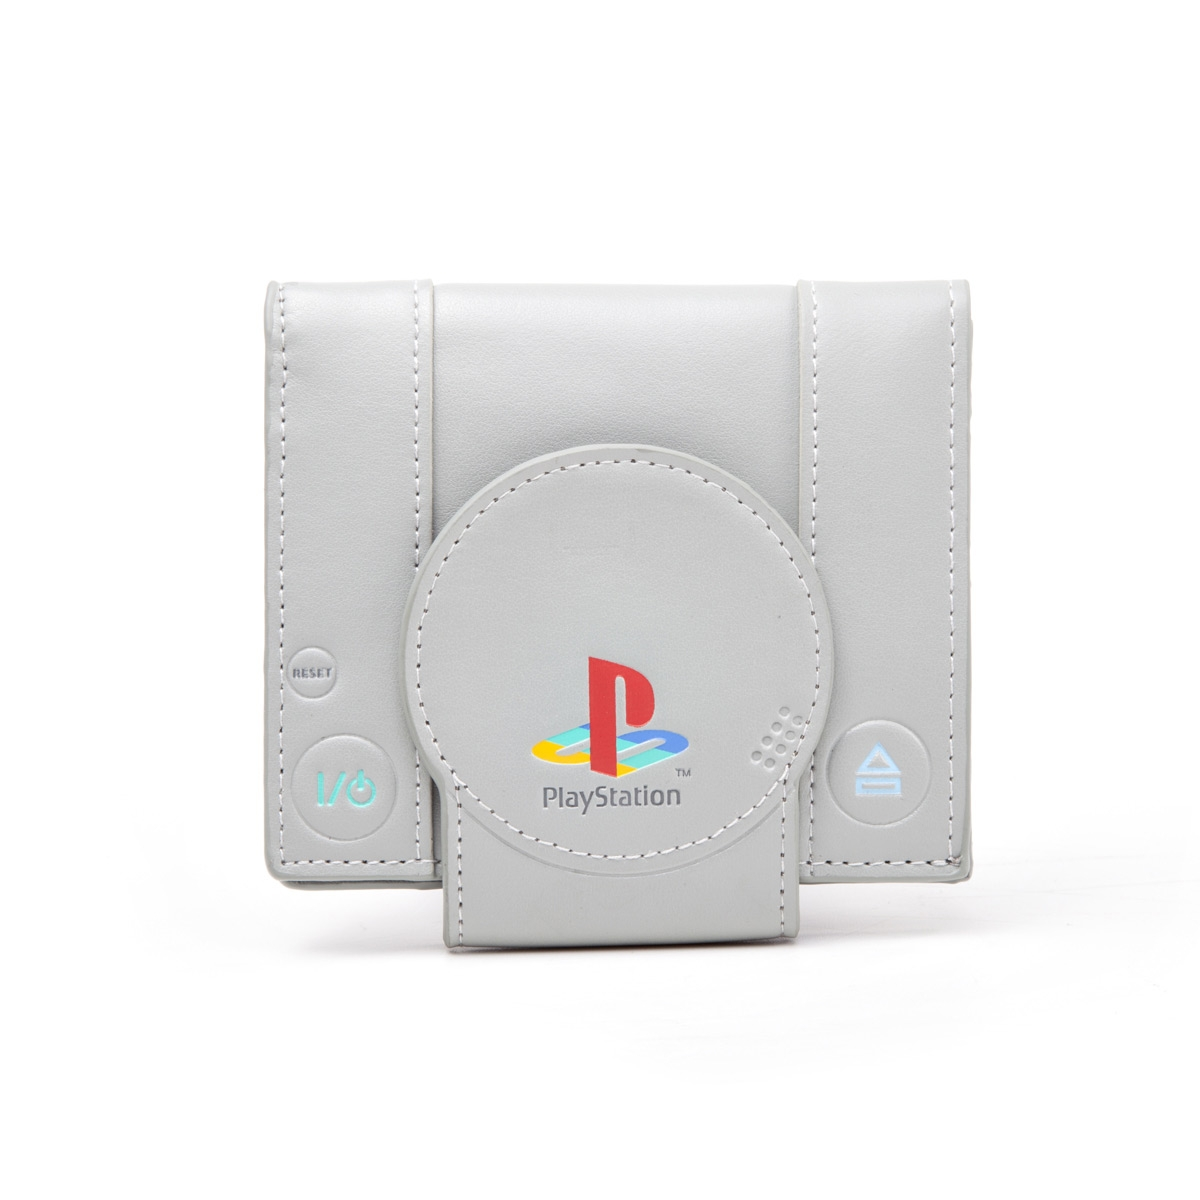 Photograph: Playstation Console Bifold Wallet